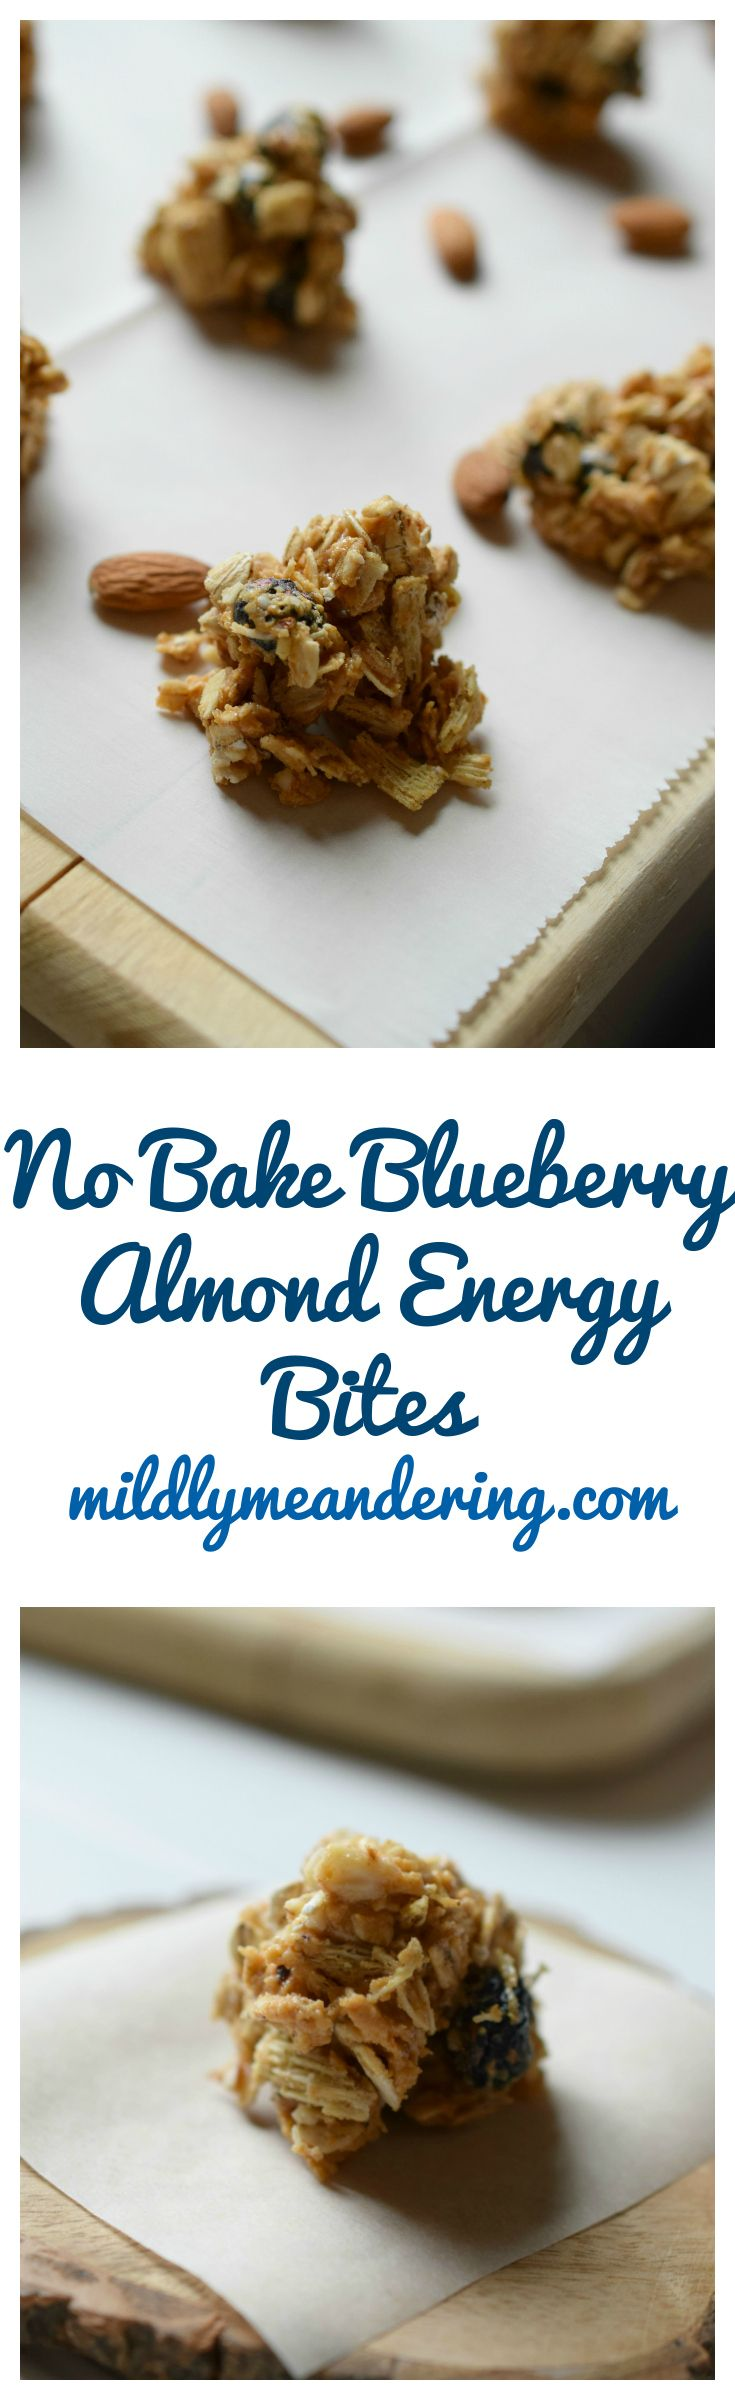 No Bake Blueberry Almond Energy Bites - Mildly Meandering